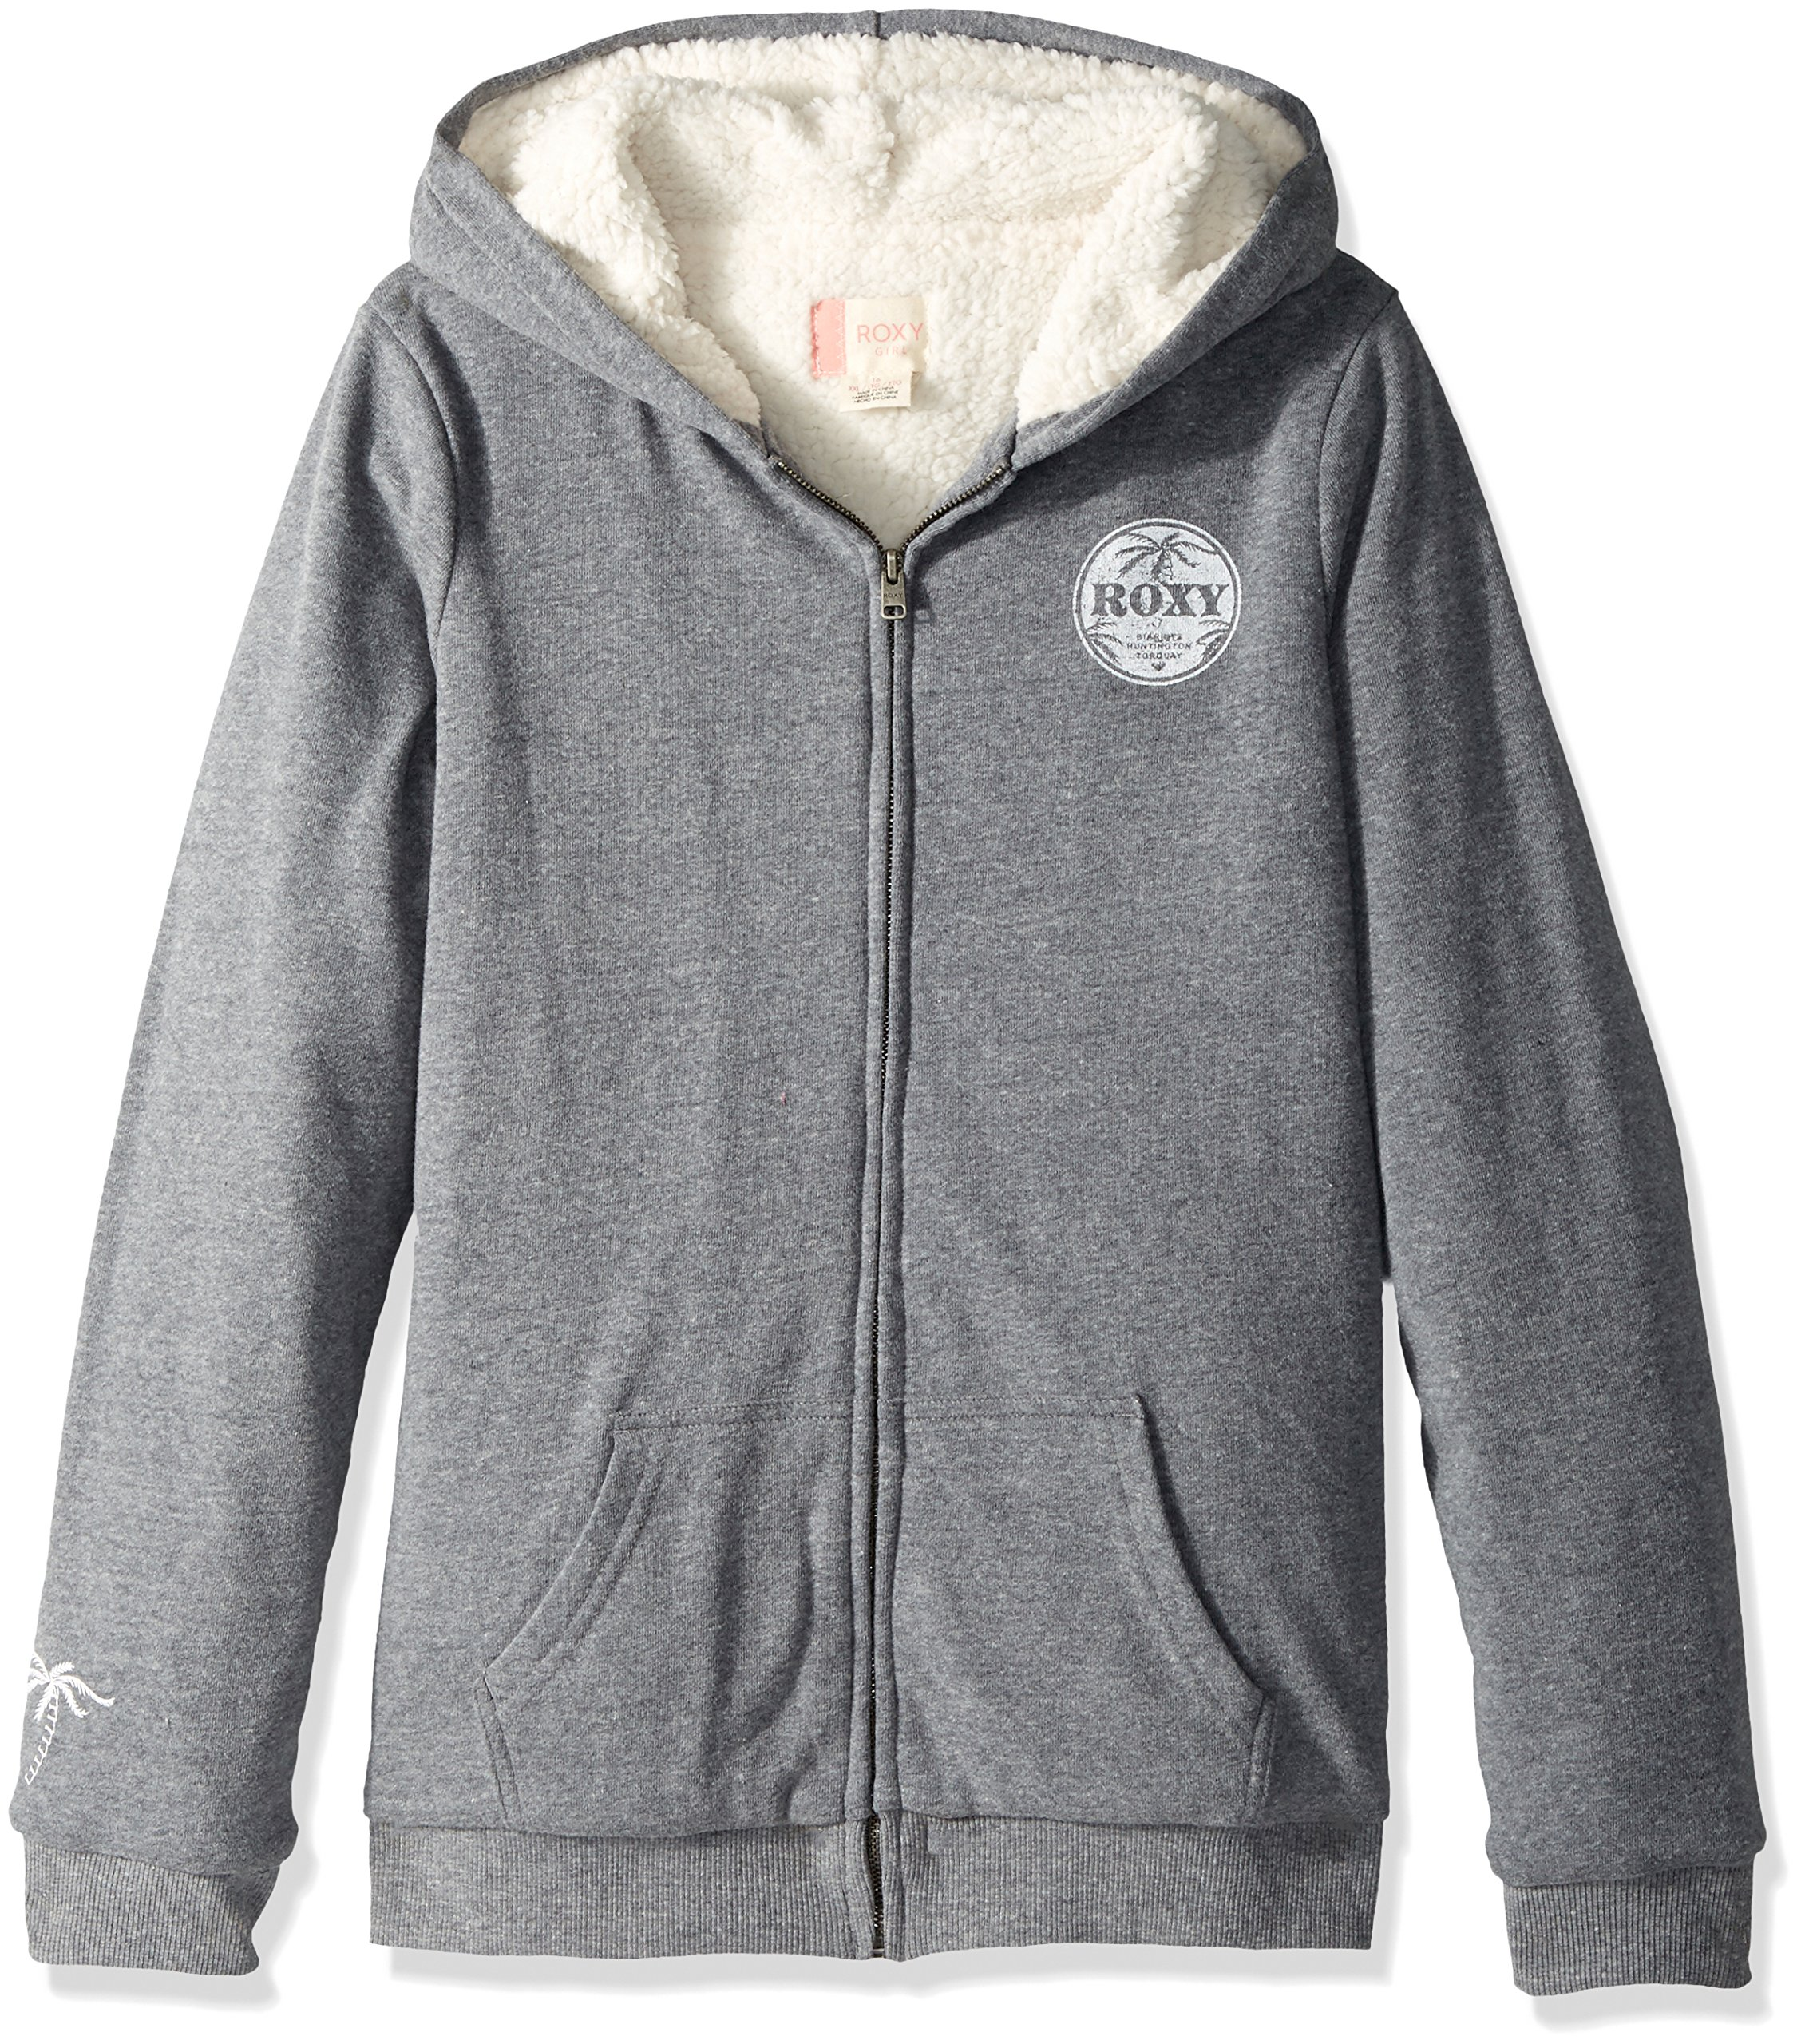 Roxy Big Girls' Memorize Density Hoodie, Charcoal Heather, 14/XL by Roxy (Image #1)